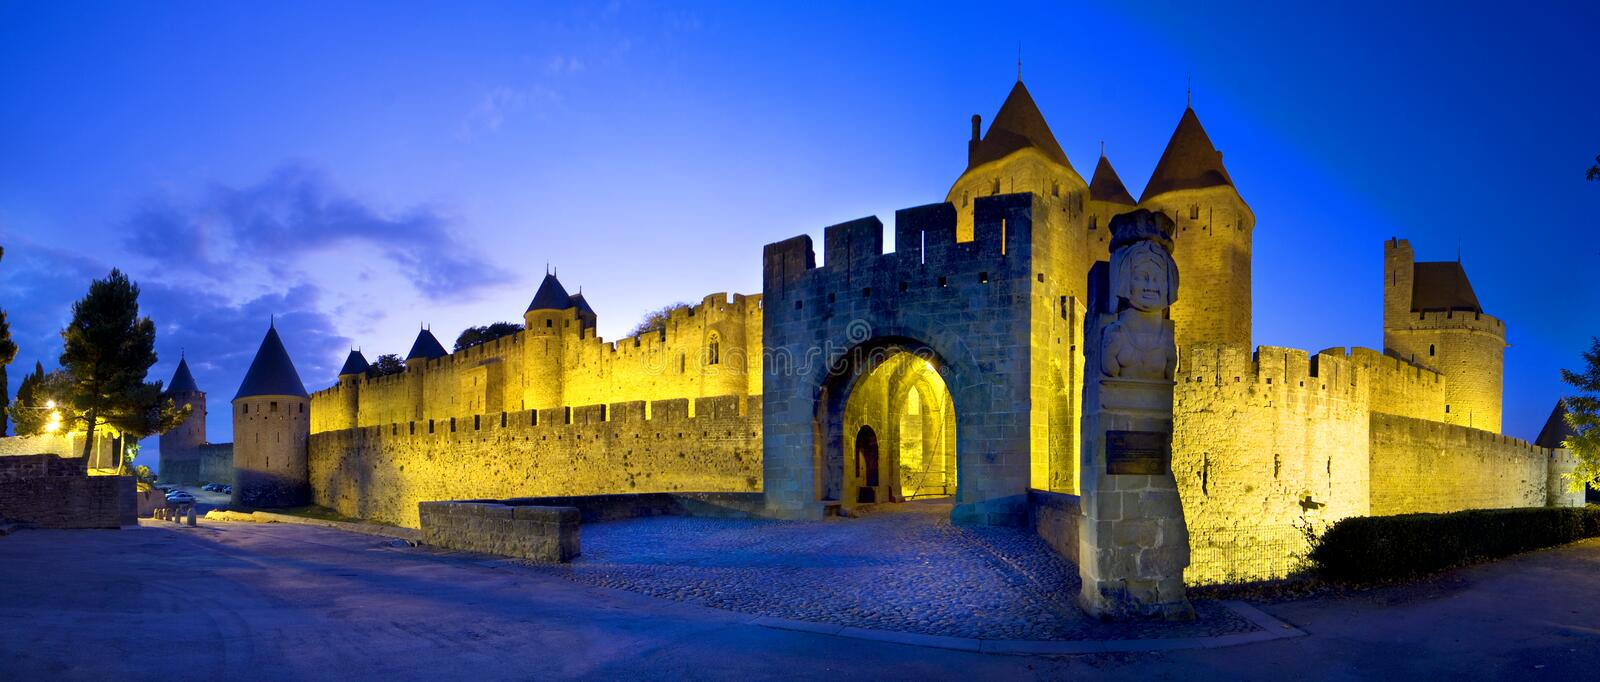 Castle of Carcassonne. View of the old french castle of Carcassonne royalty free stock photos